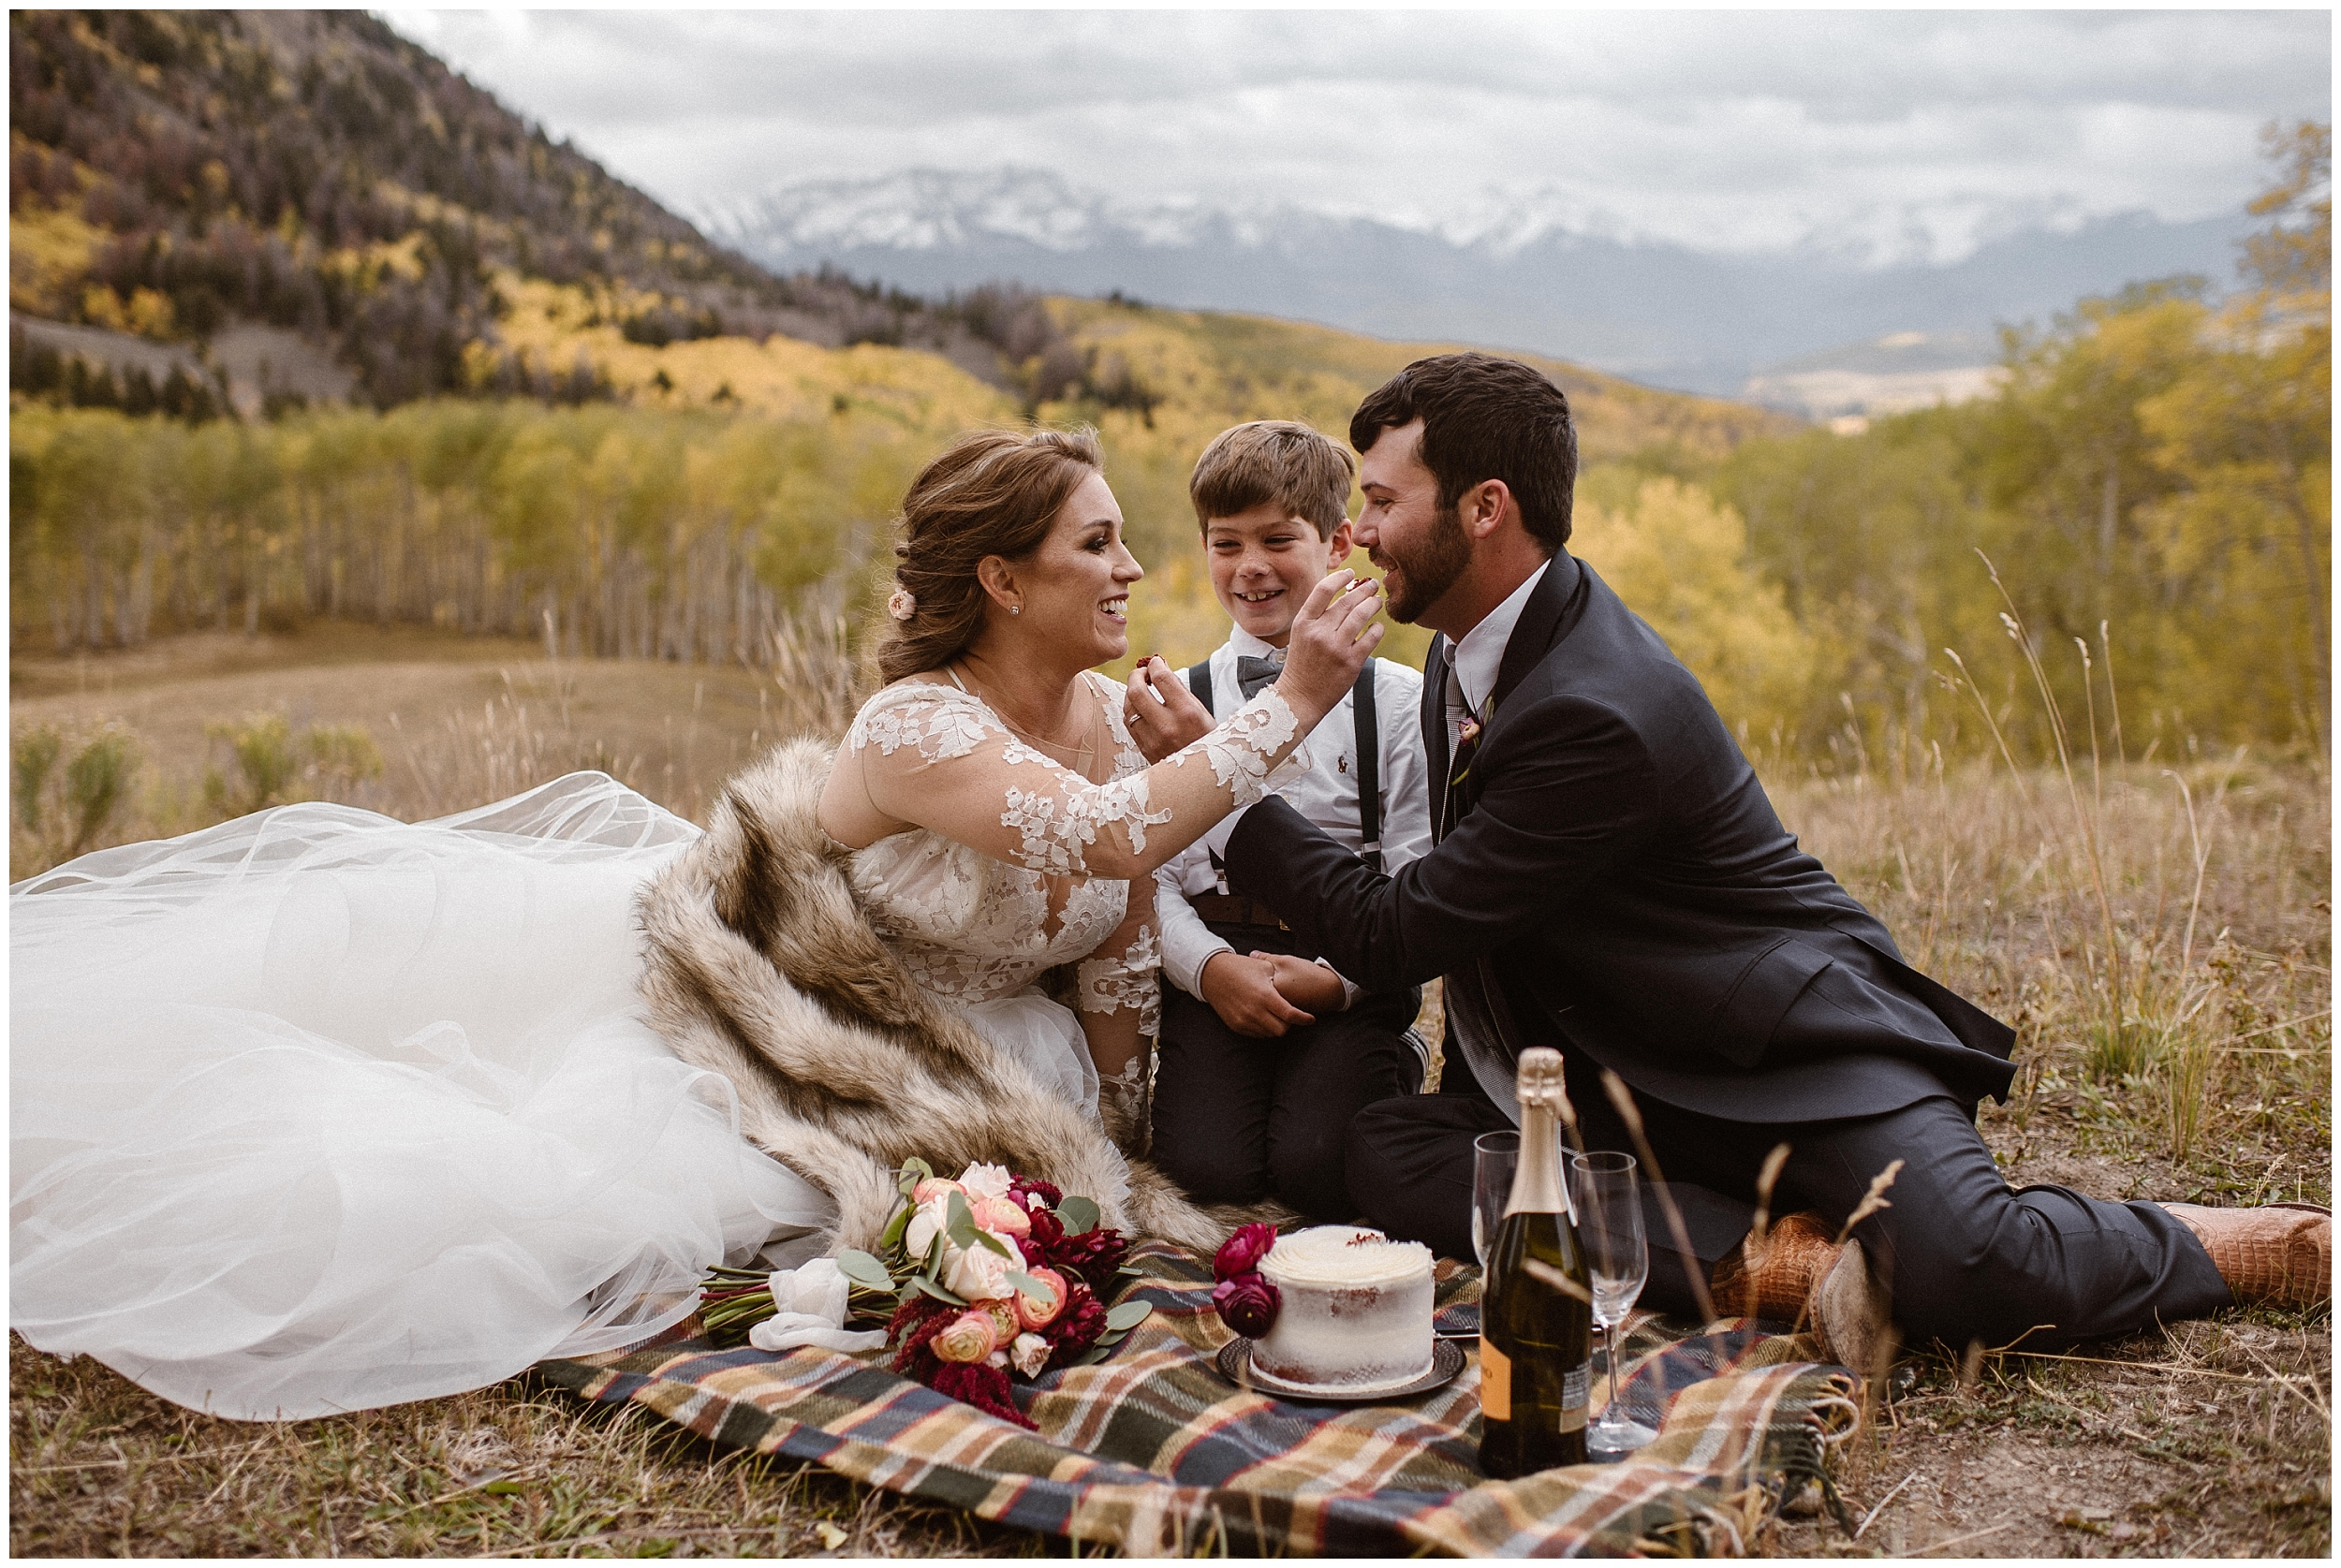 A young boy sits in the middle of a bride and groom on acheckered blanket during the reception after eloping. The bride and groom are feeding each other snacks while the boy looks on, laughing.